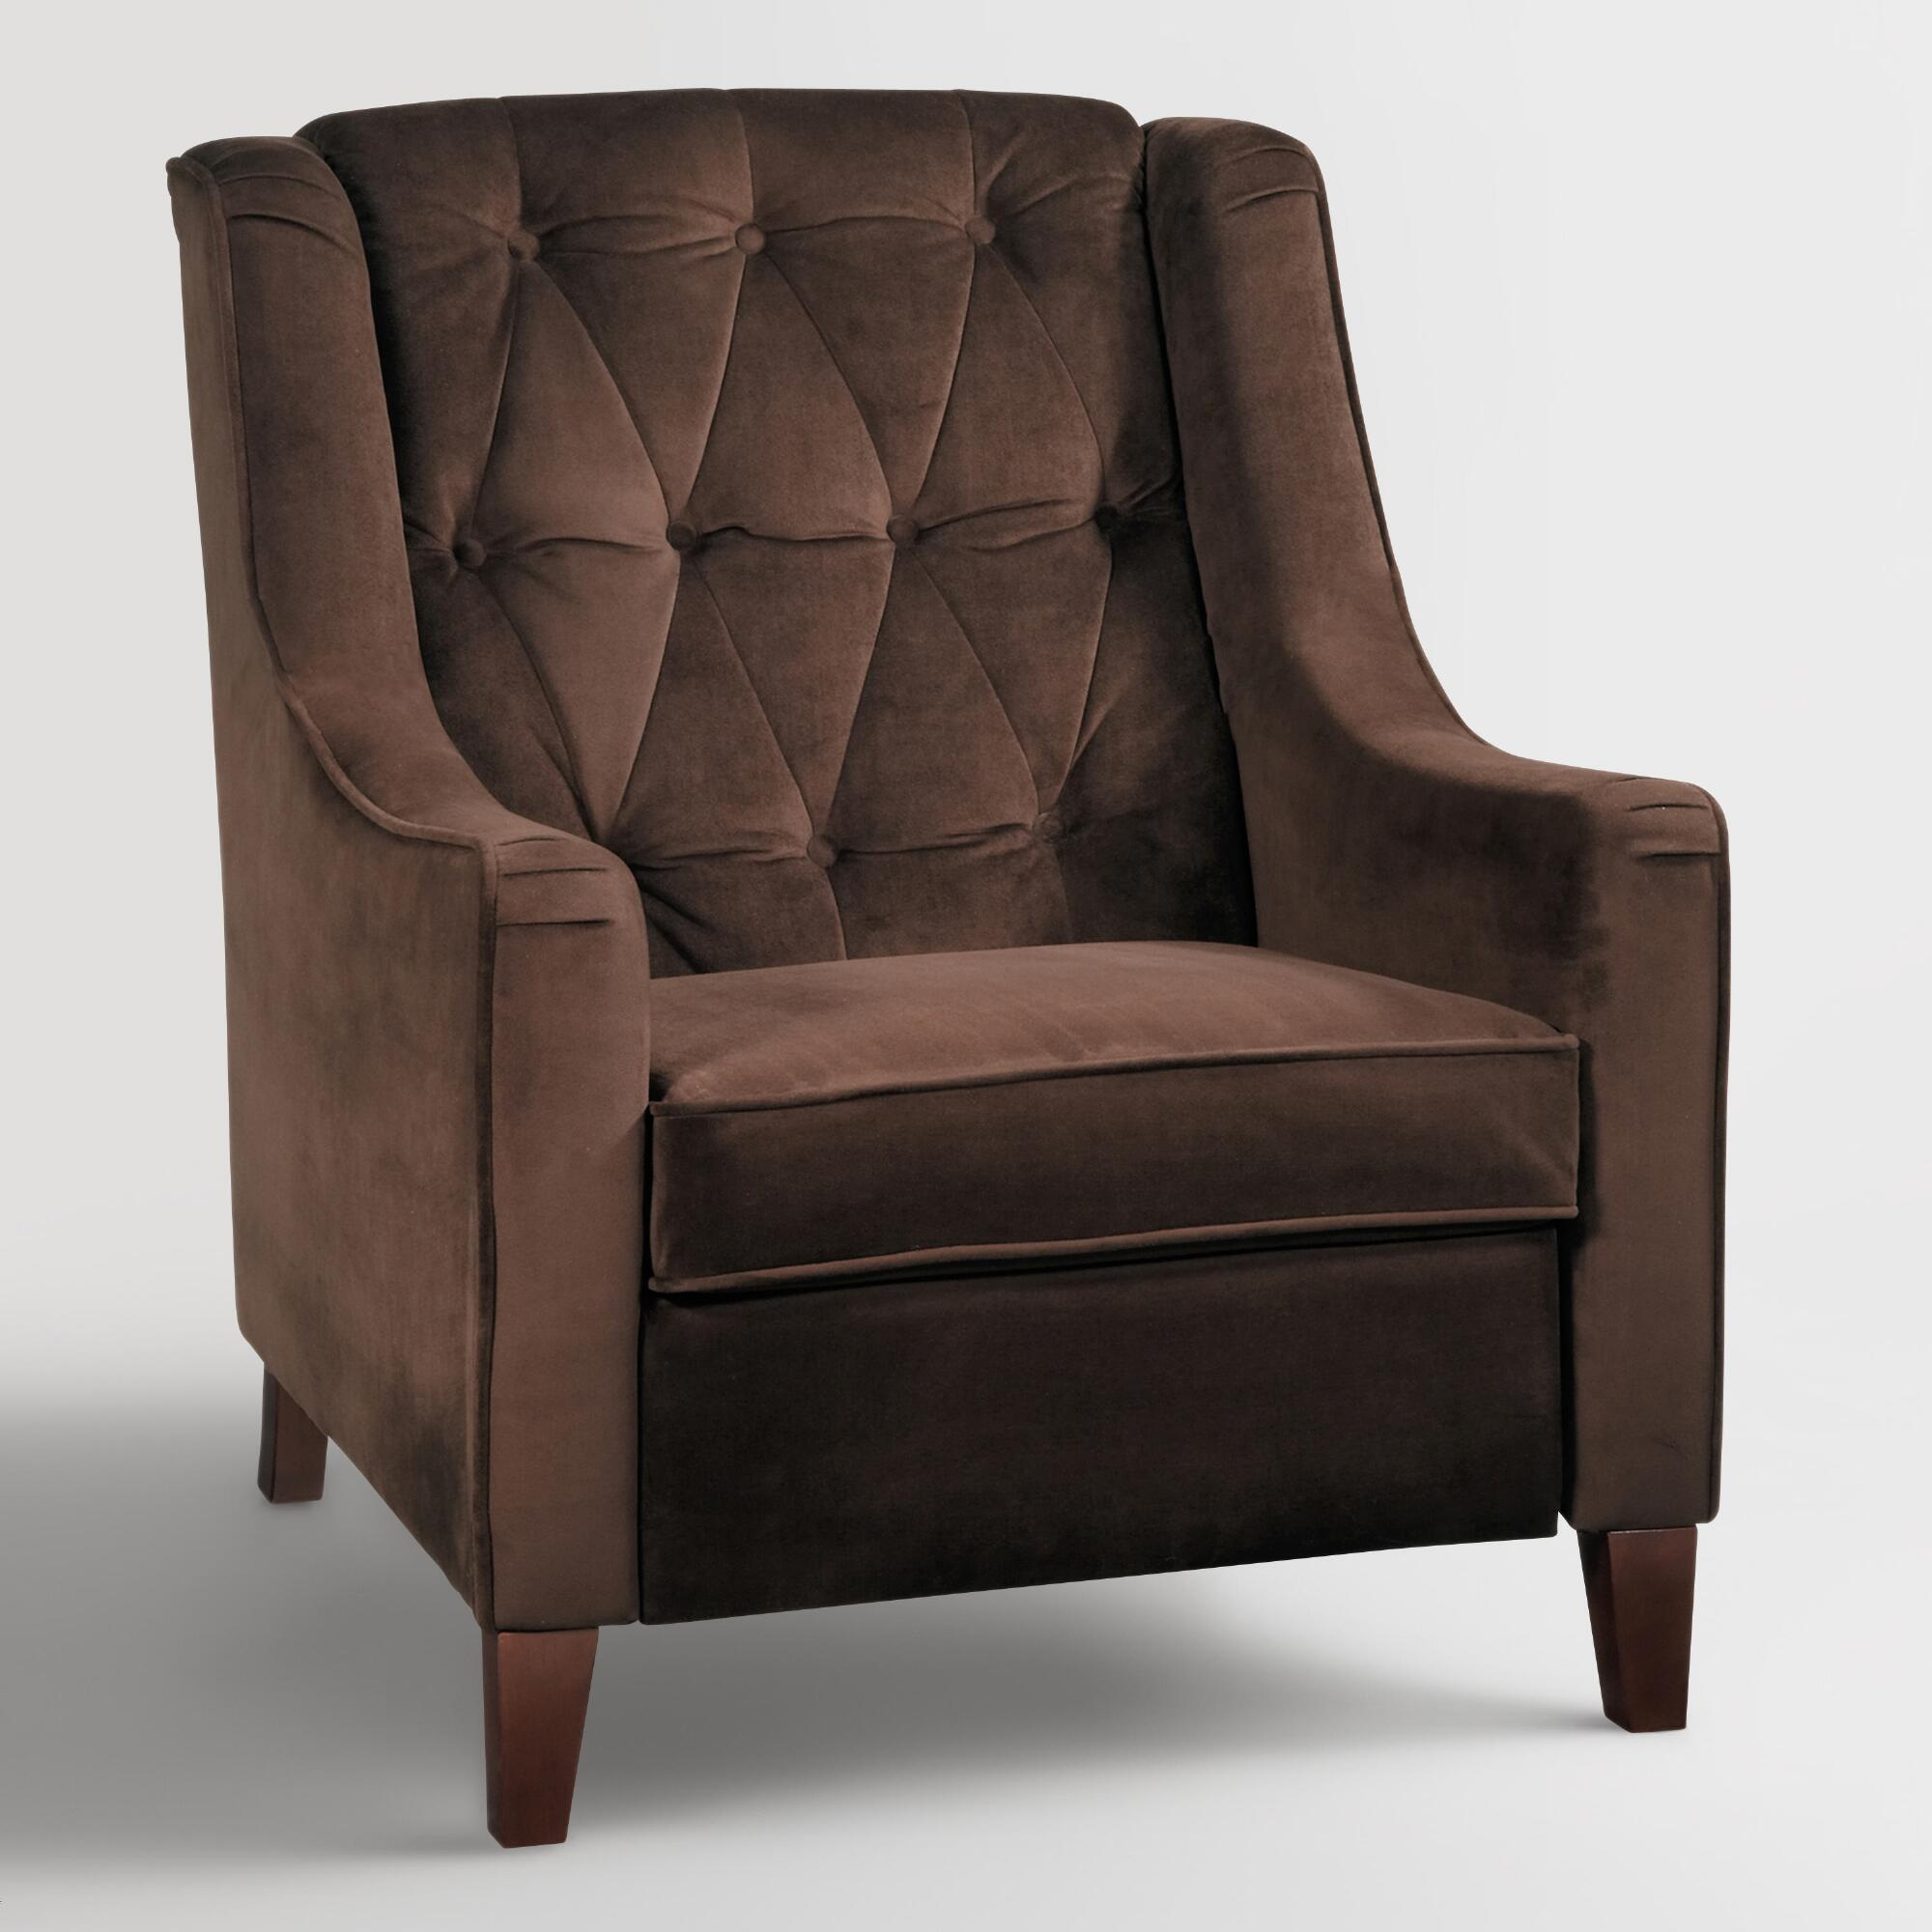 Chocolate Victoria Velvet Tufted High Back Chair World Market